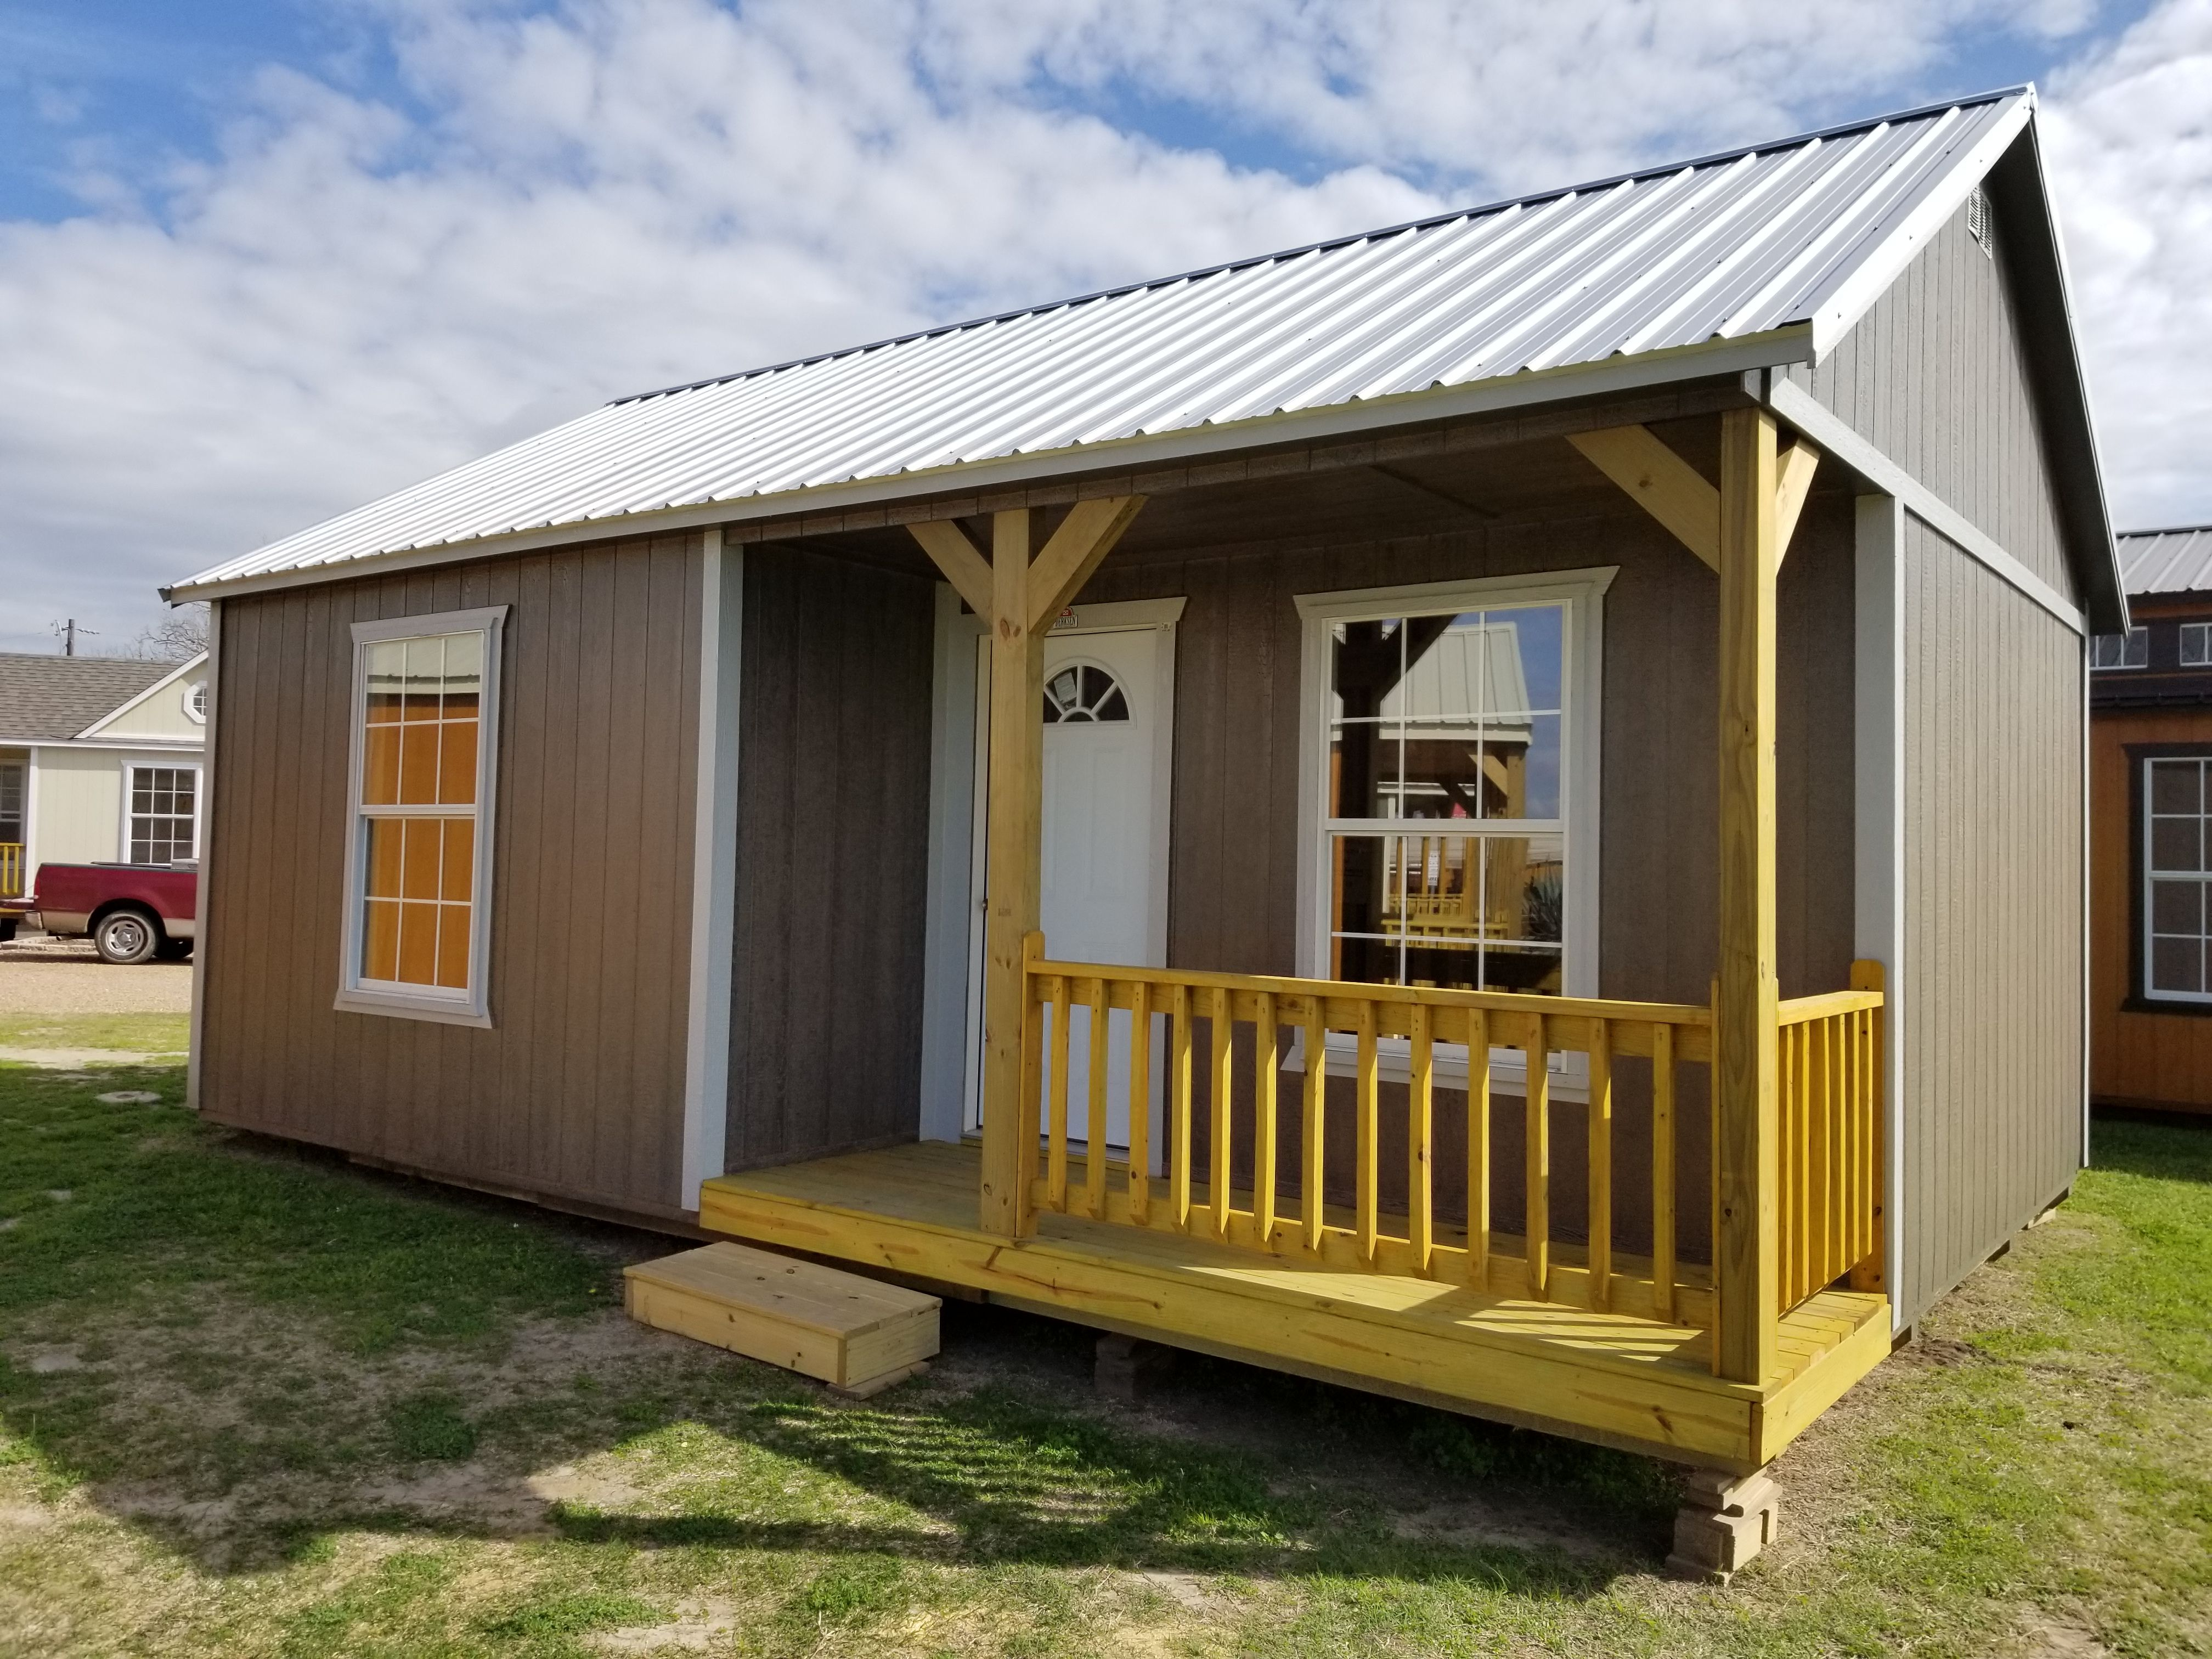 16 x 24 Side Cabin 384 Sq. Ft. Includes all appliances and ...